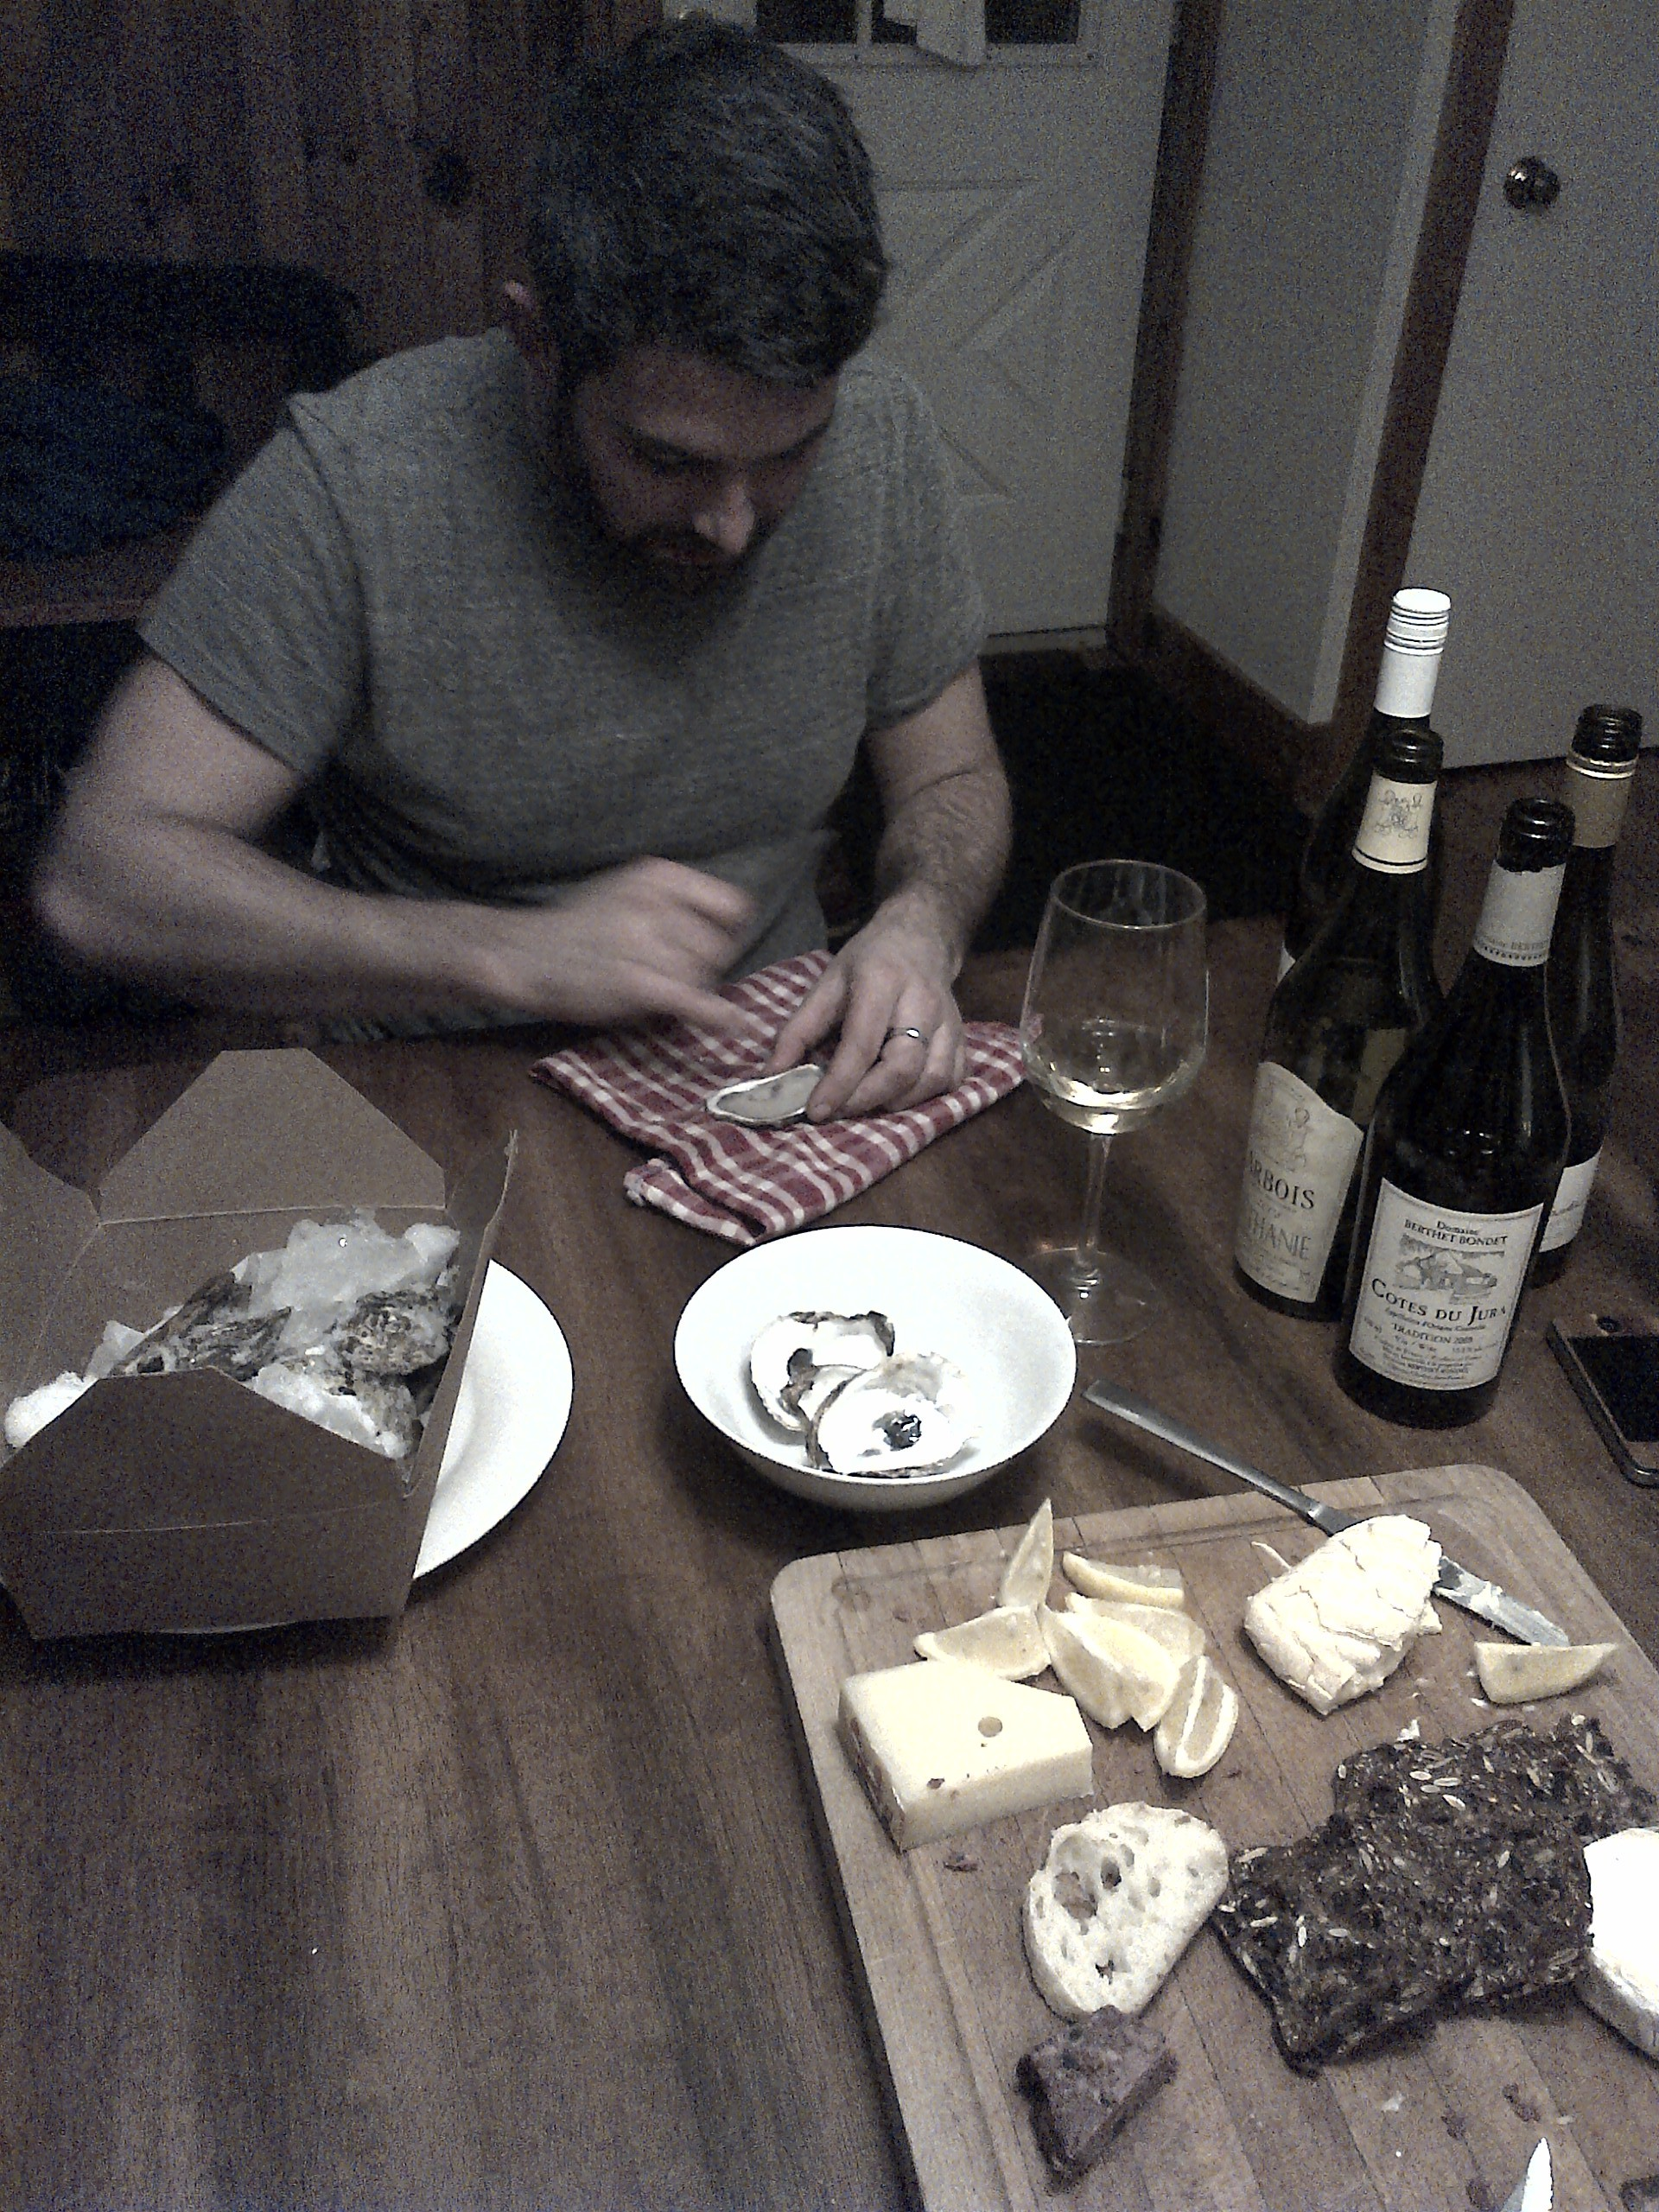 @CitizenSwell shucking up a storm. Boys night in Chelsea, QC